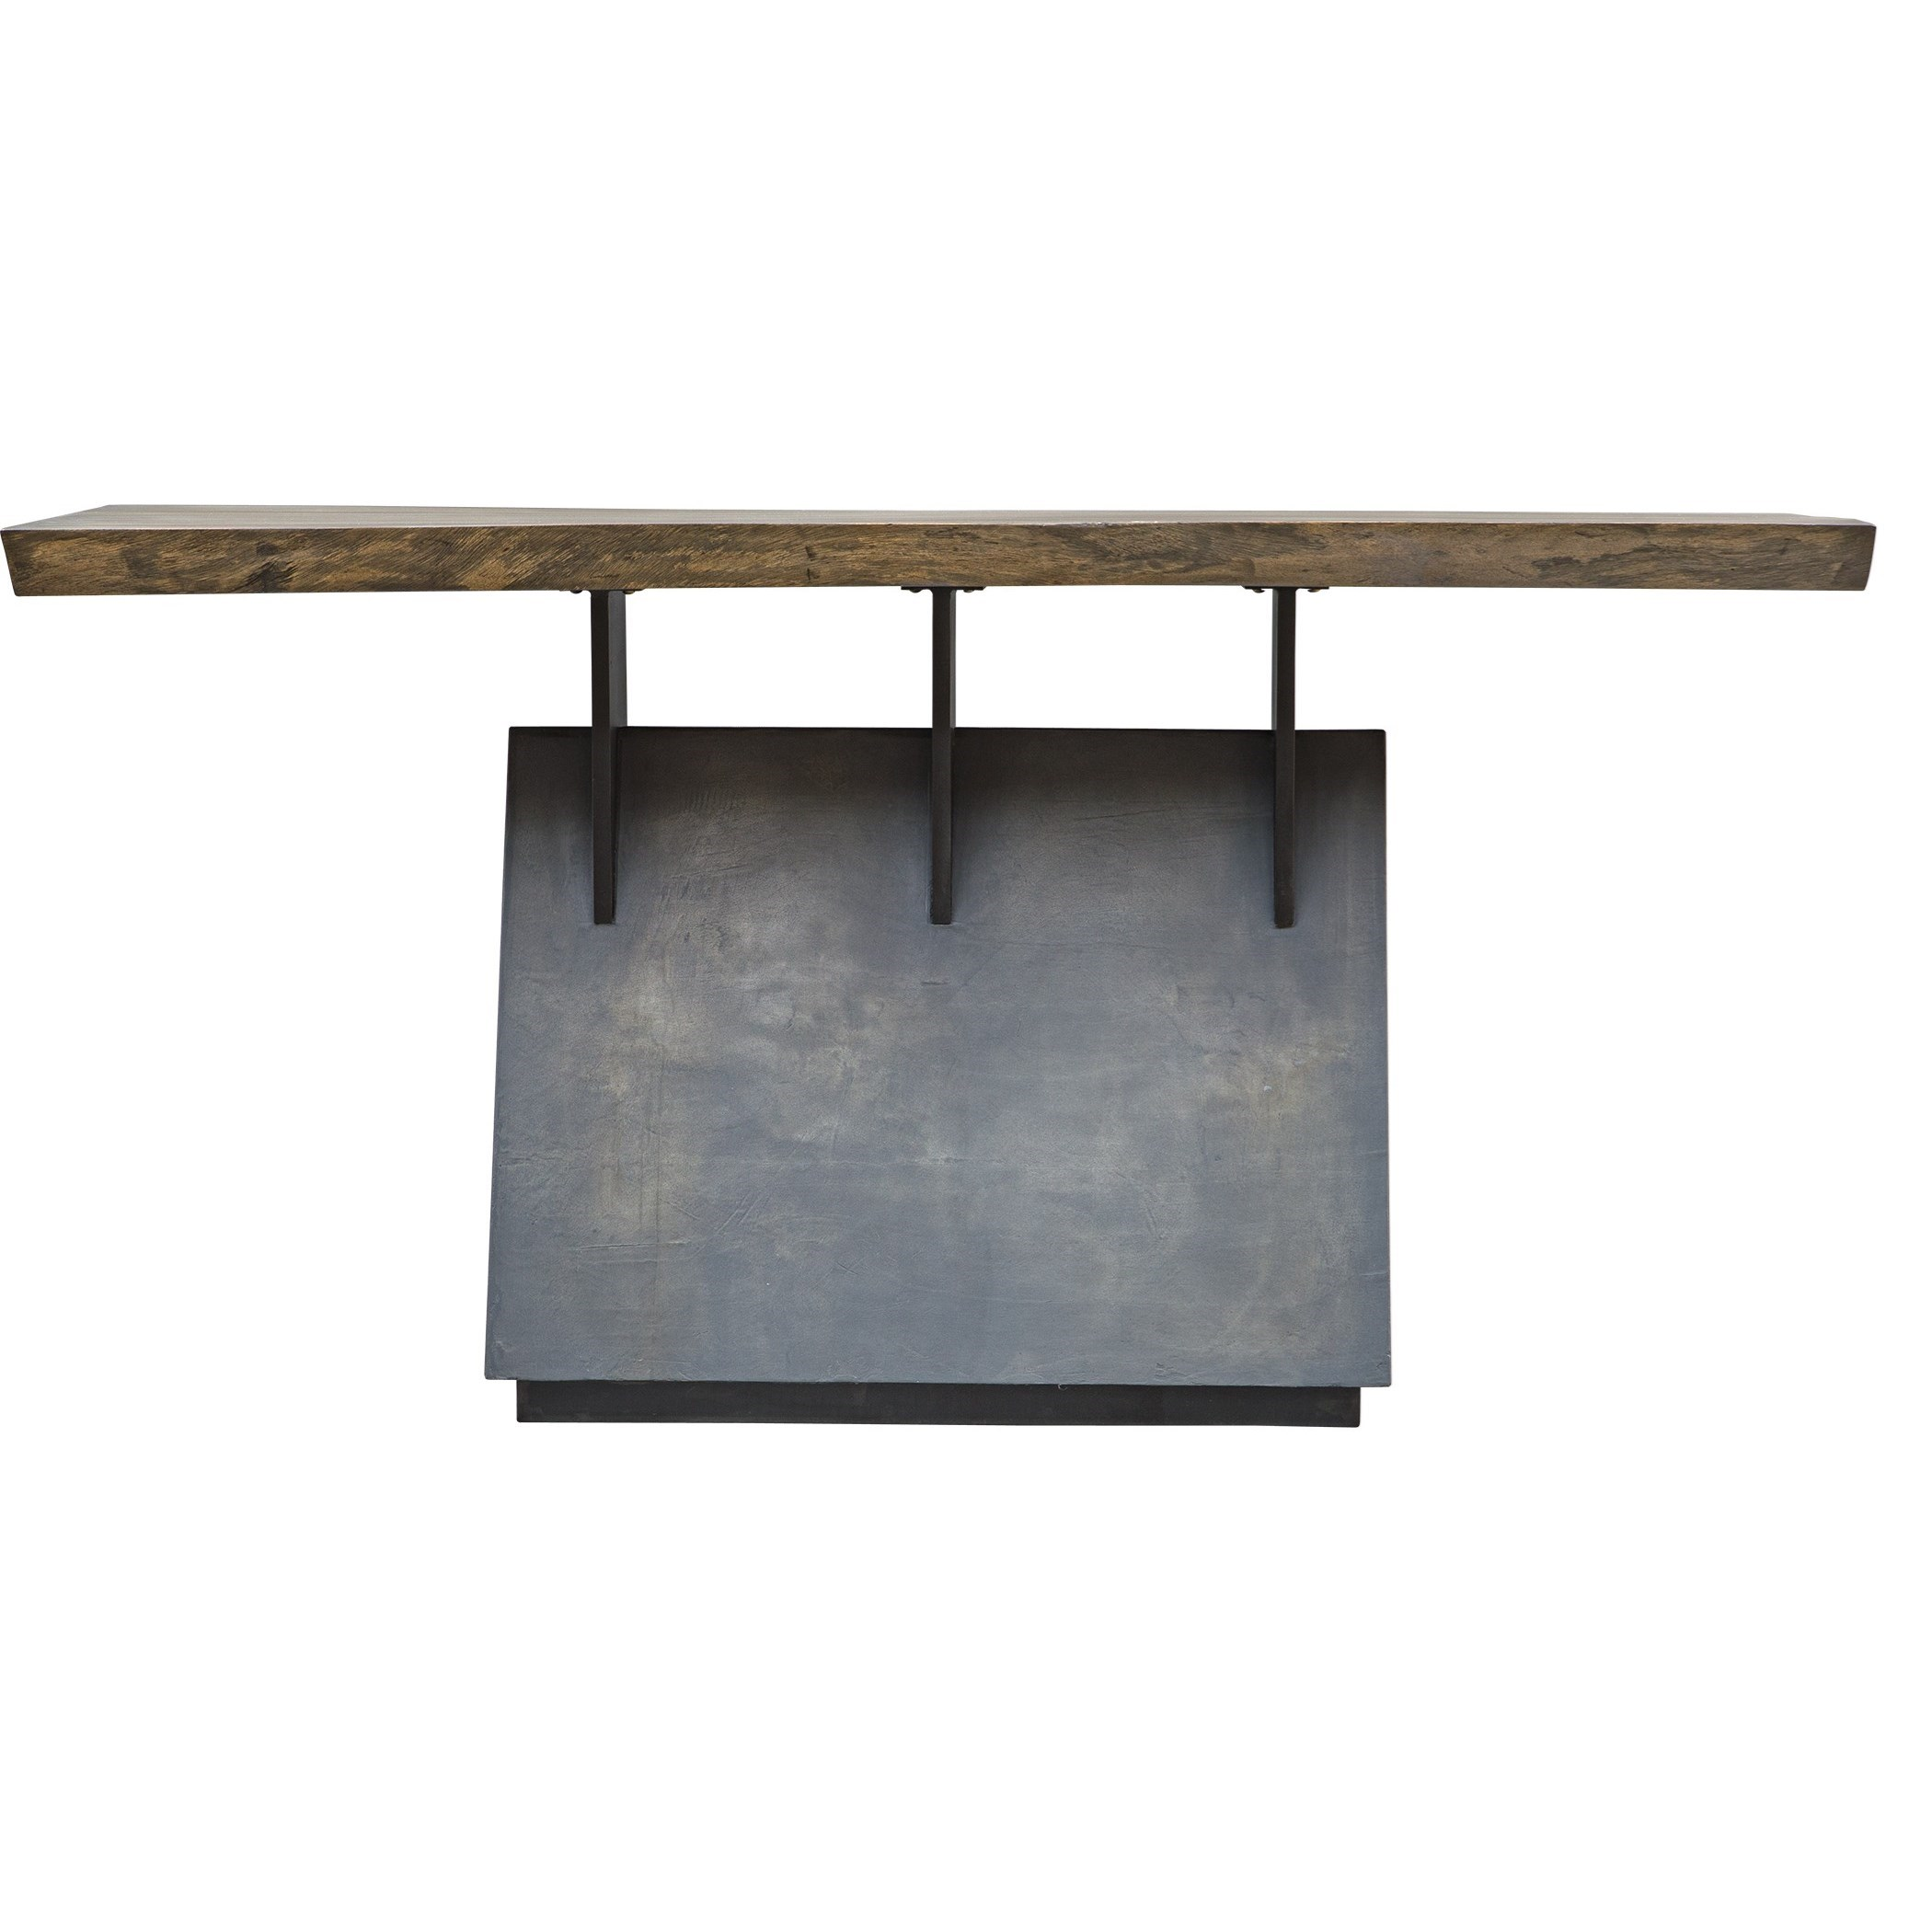 Accent Furniture - Occasional Tables Vessel Industrial Console Table by Uttermost at Del Sol Furniture